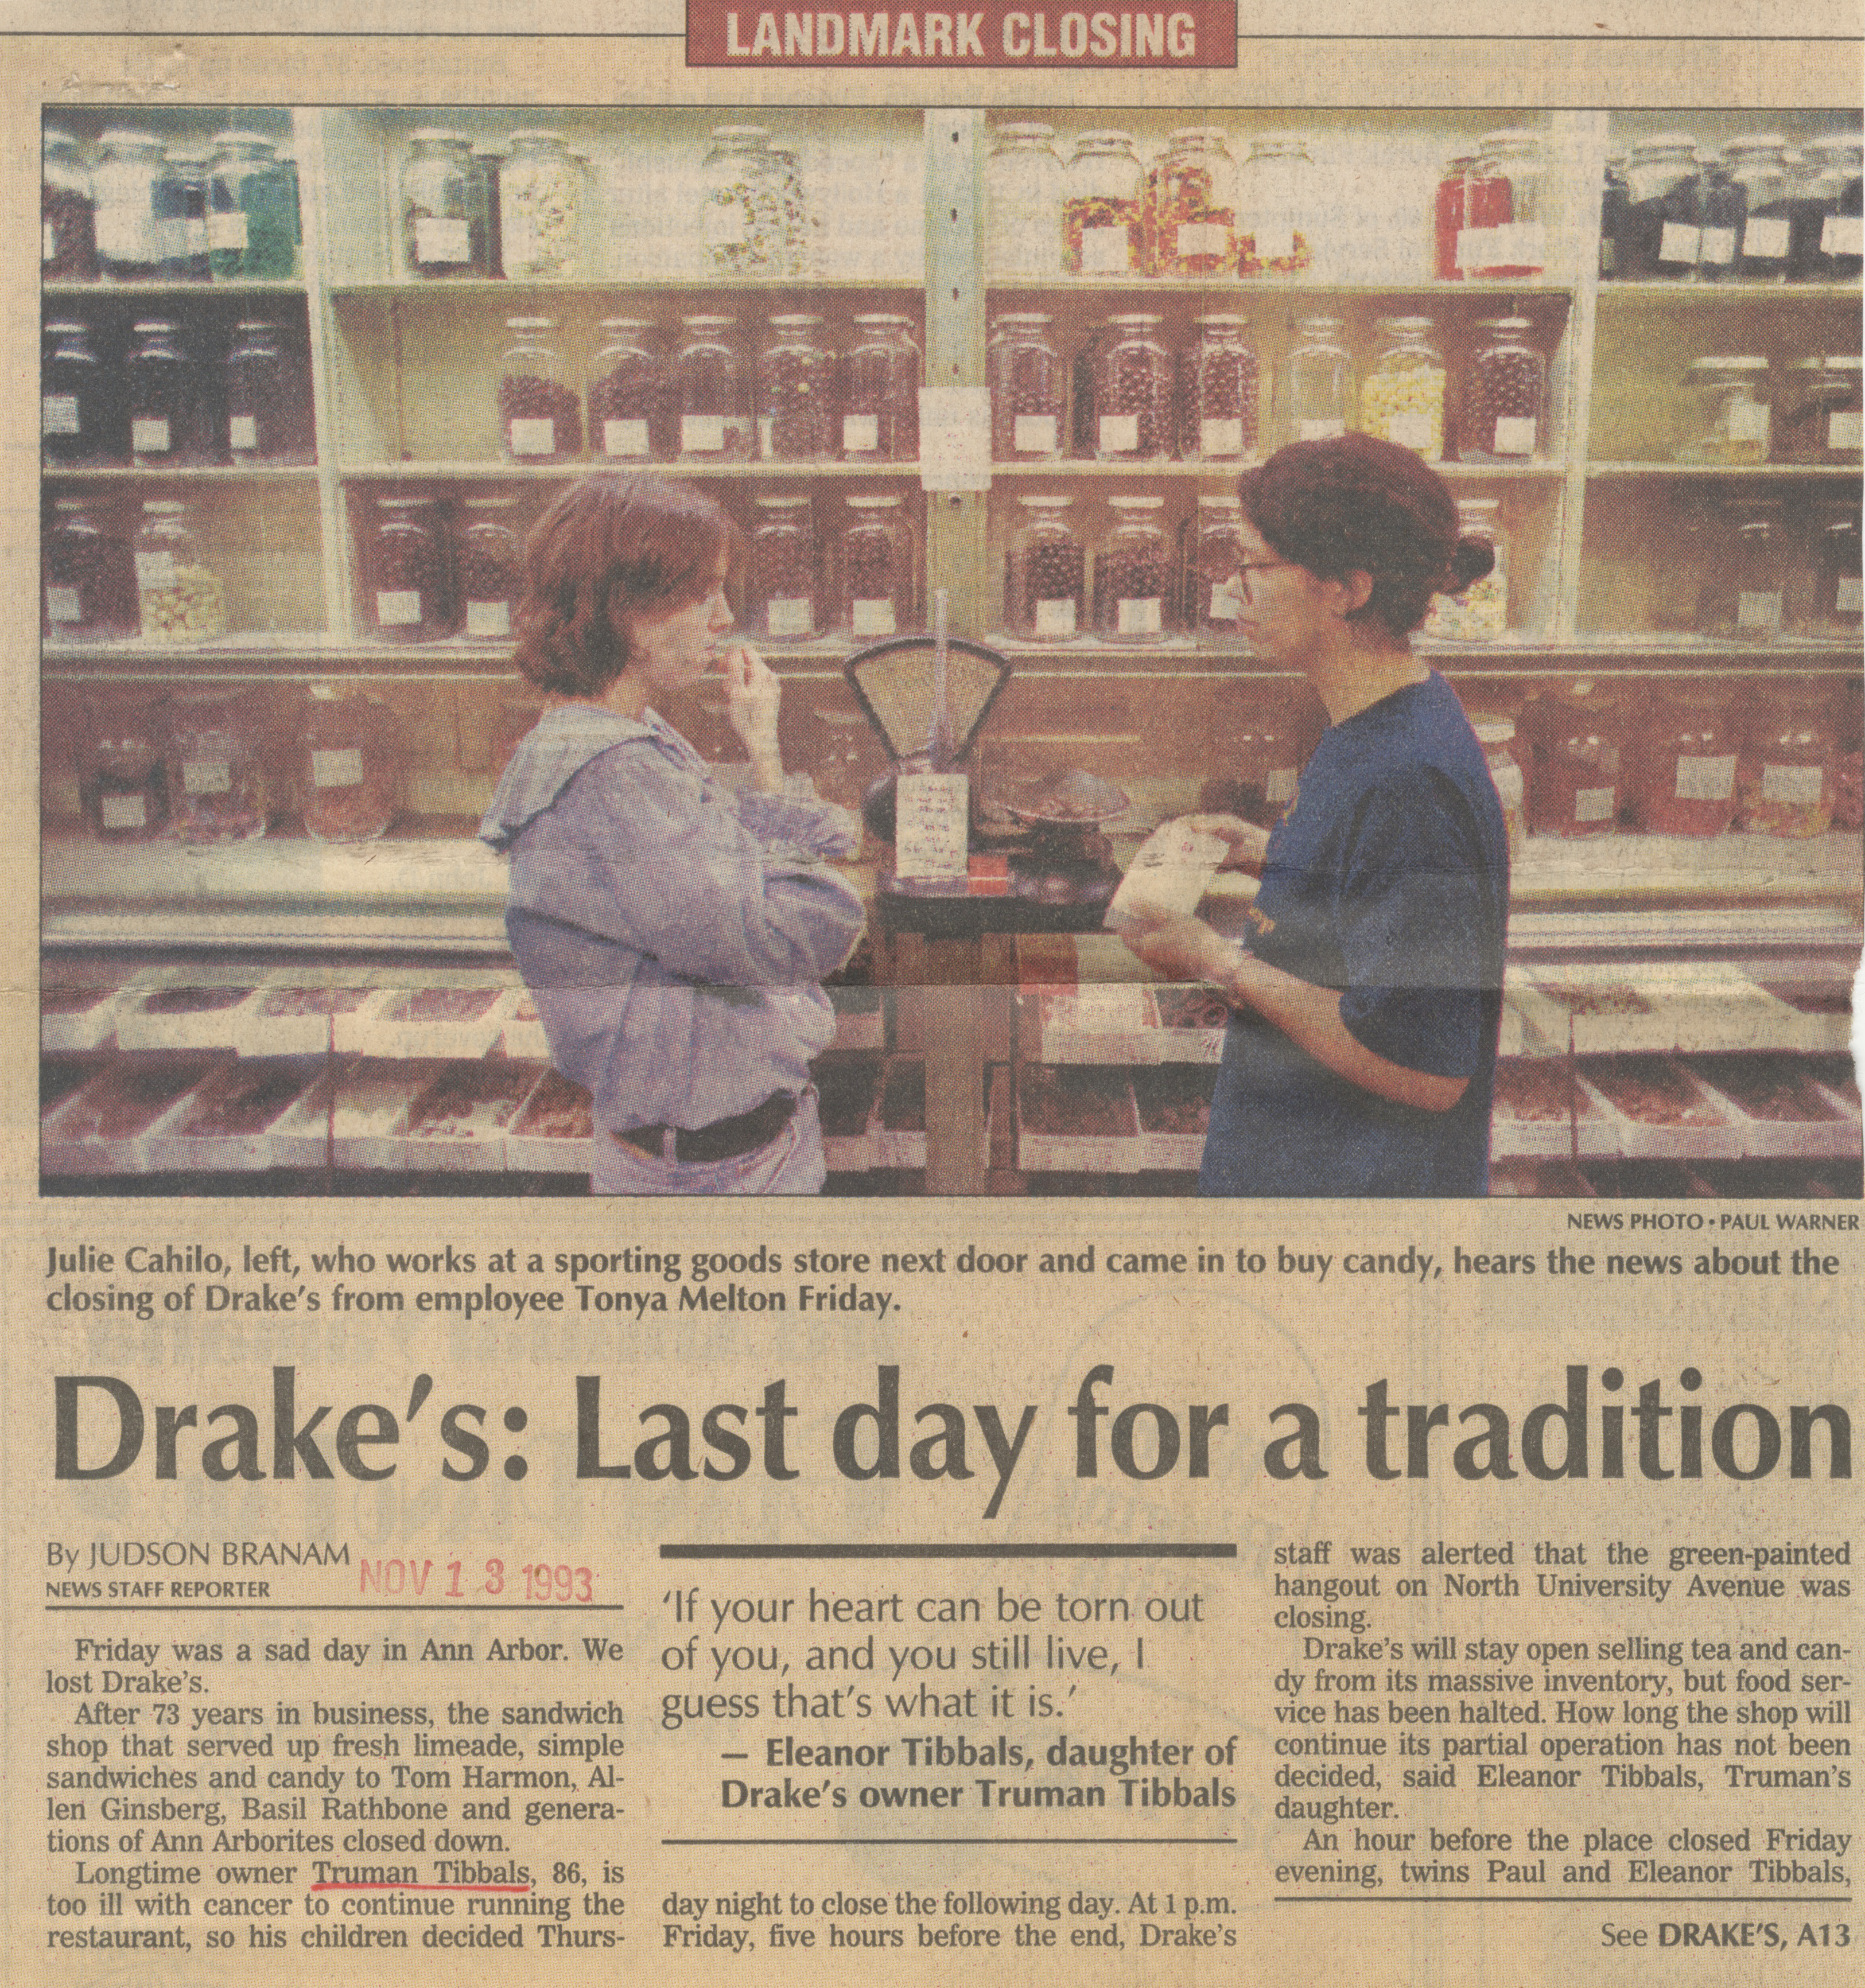 Drake's: Last Day For A Tradition image